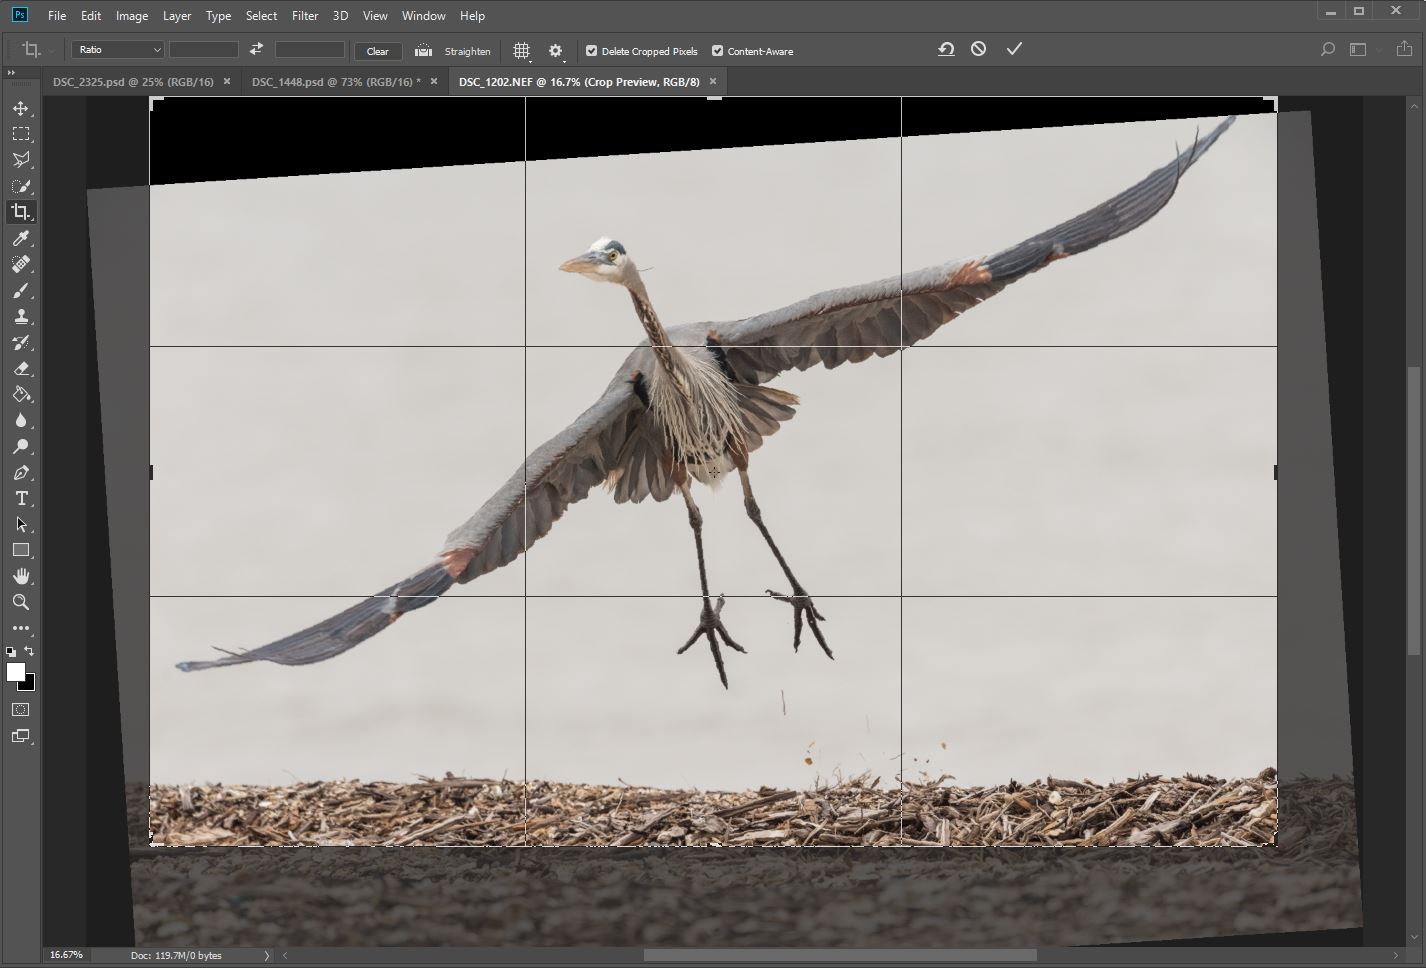 Straighten horizon in Photoshop during crop selection; make sure Content Aware box is checked.